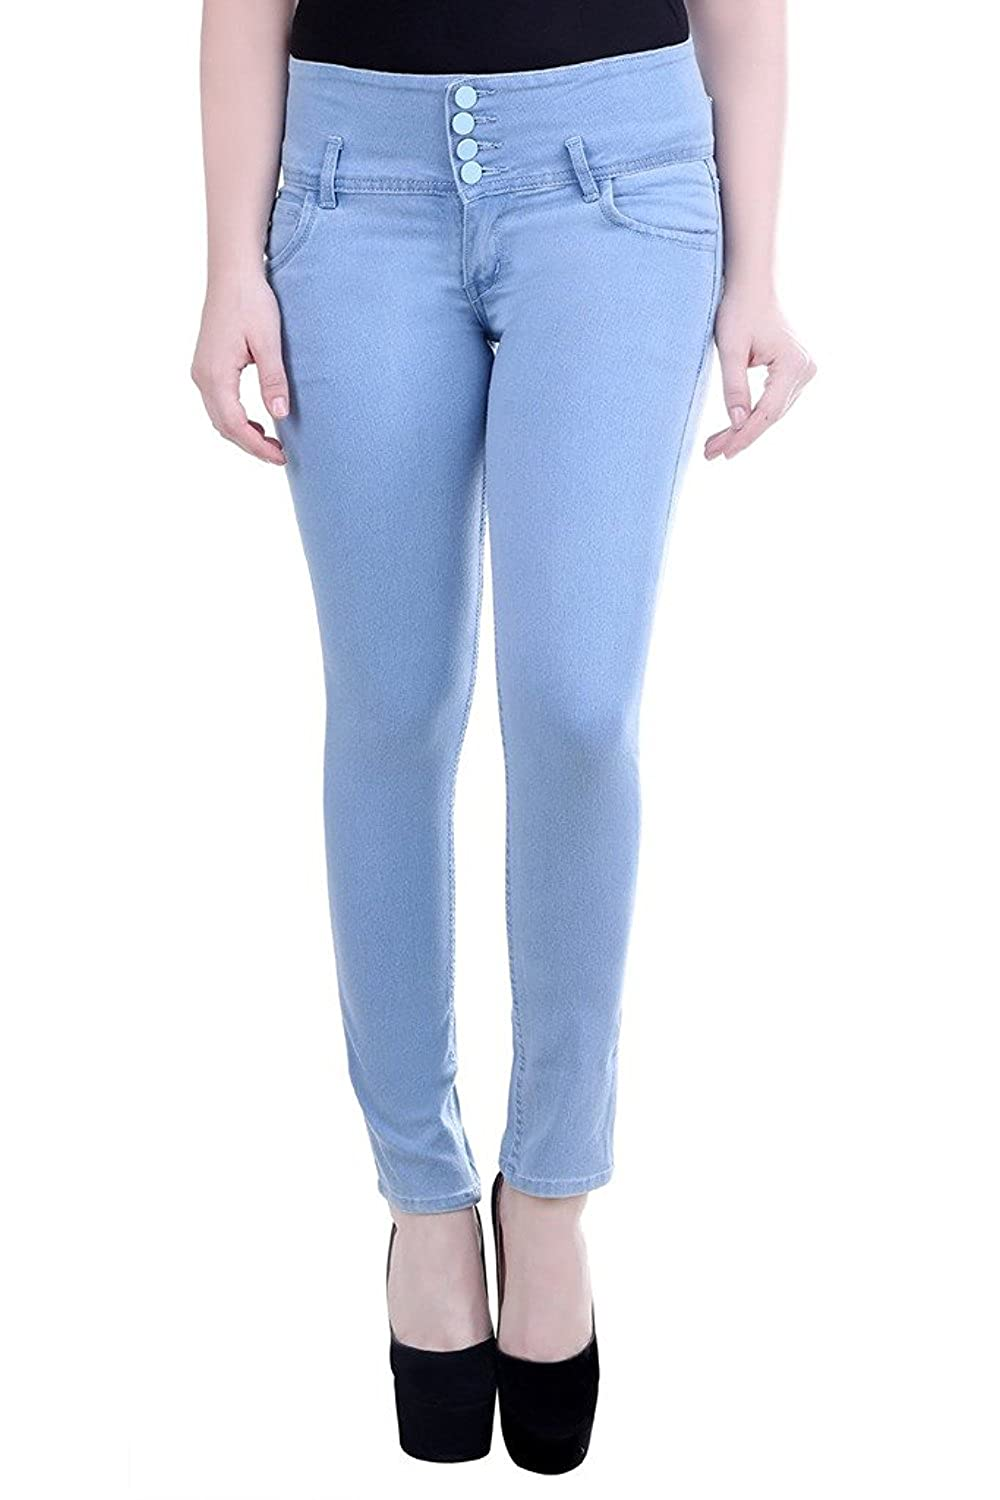 blue jeans for women photo album best fashion trends and